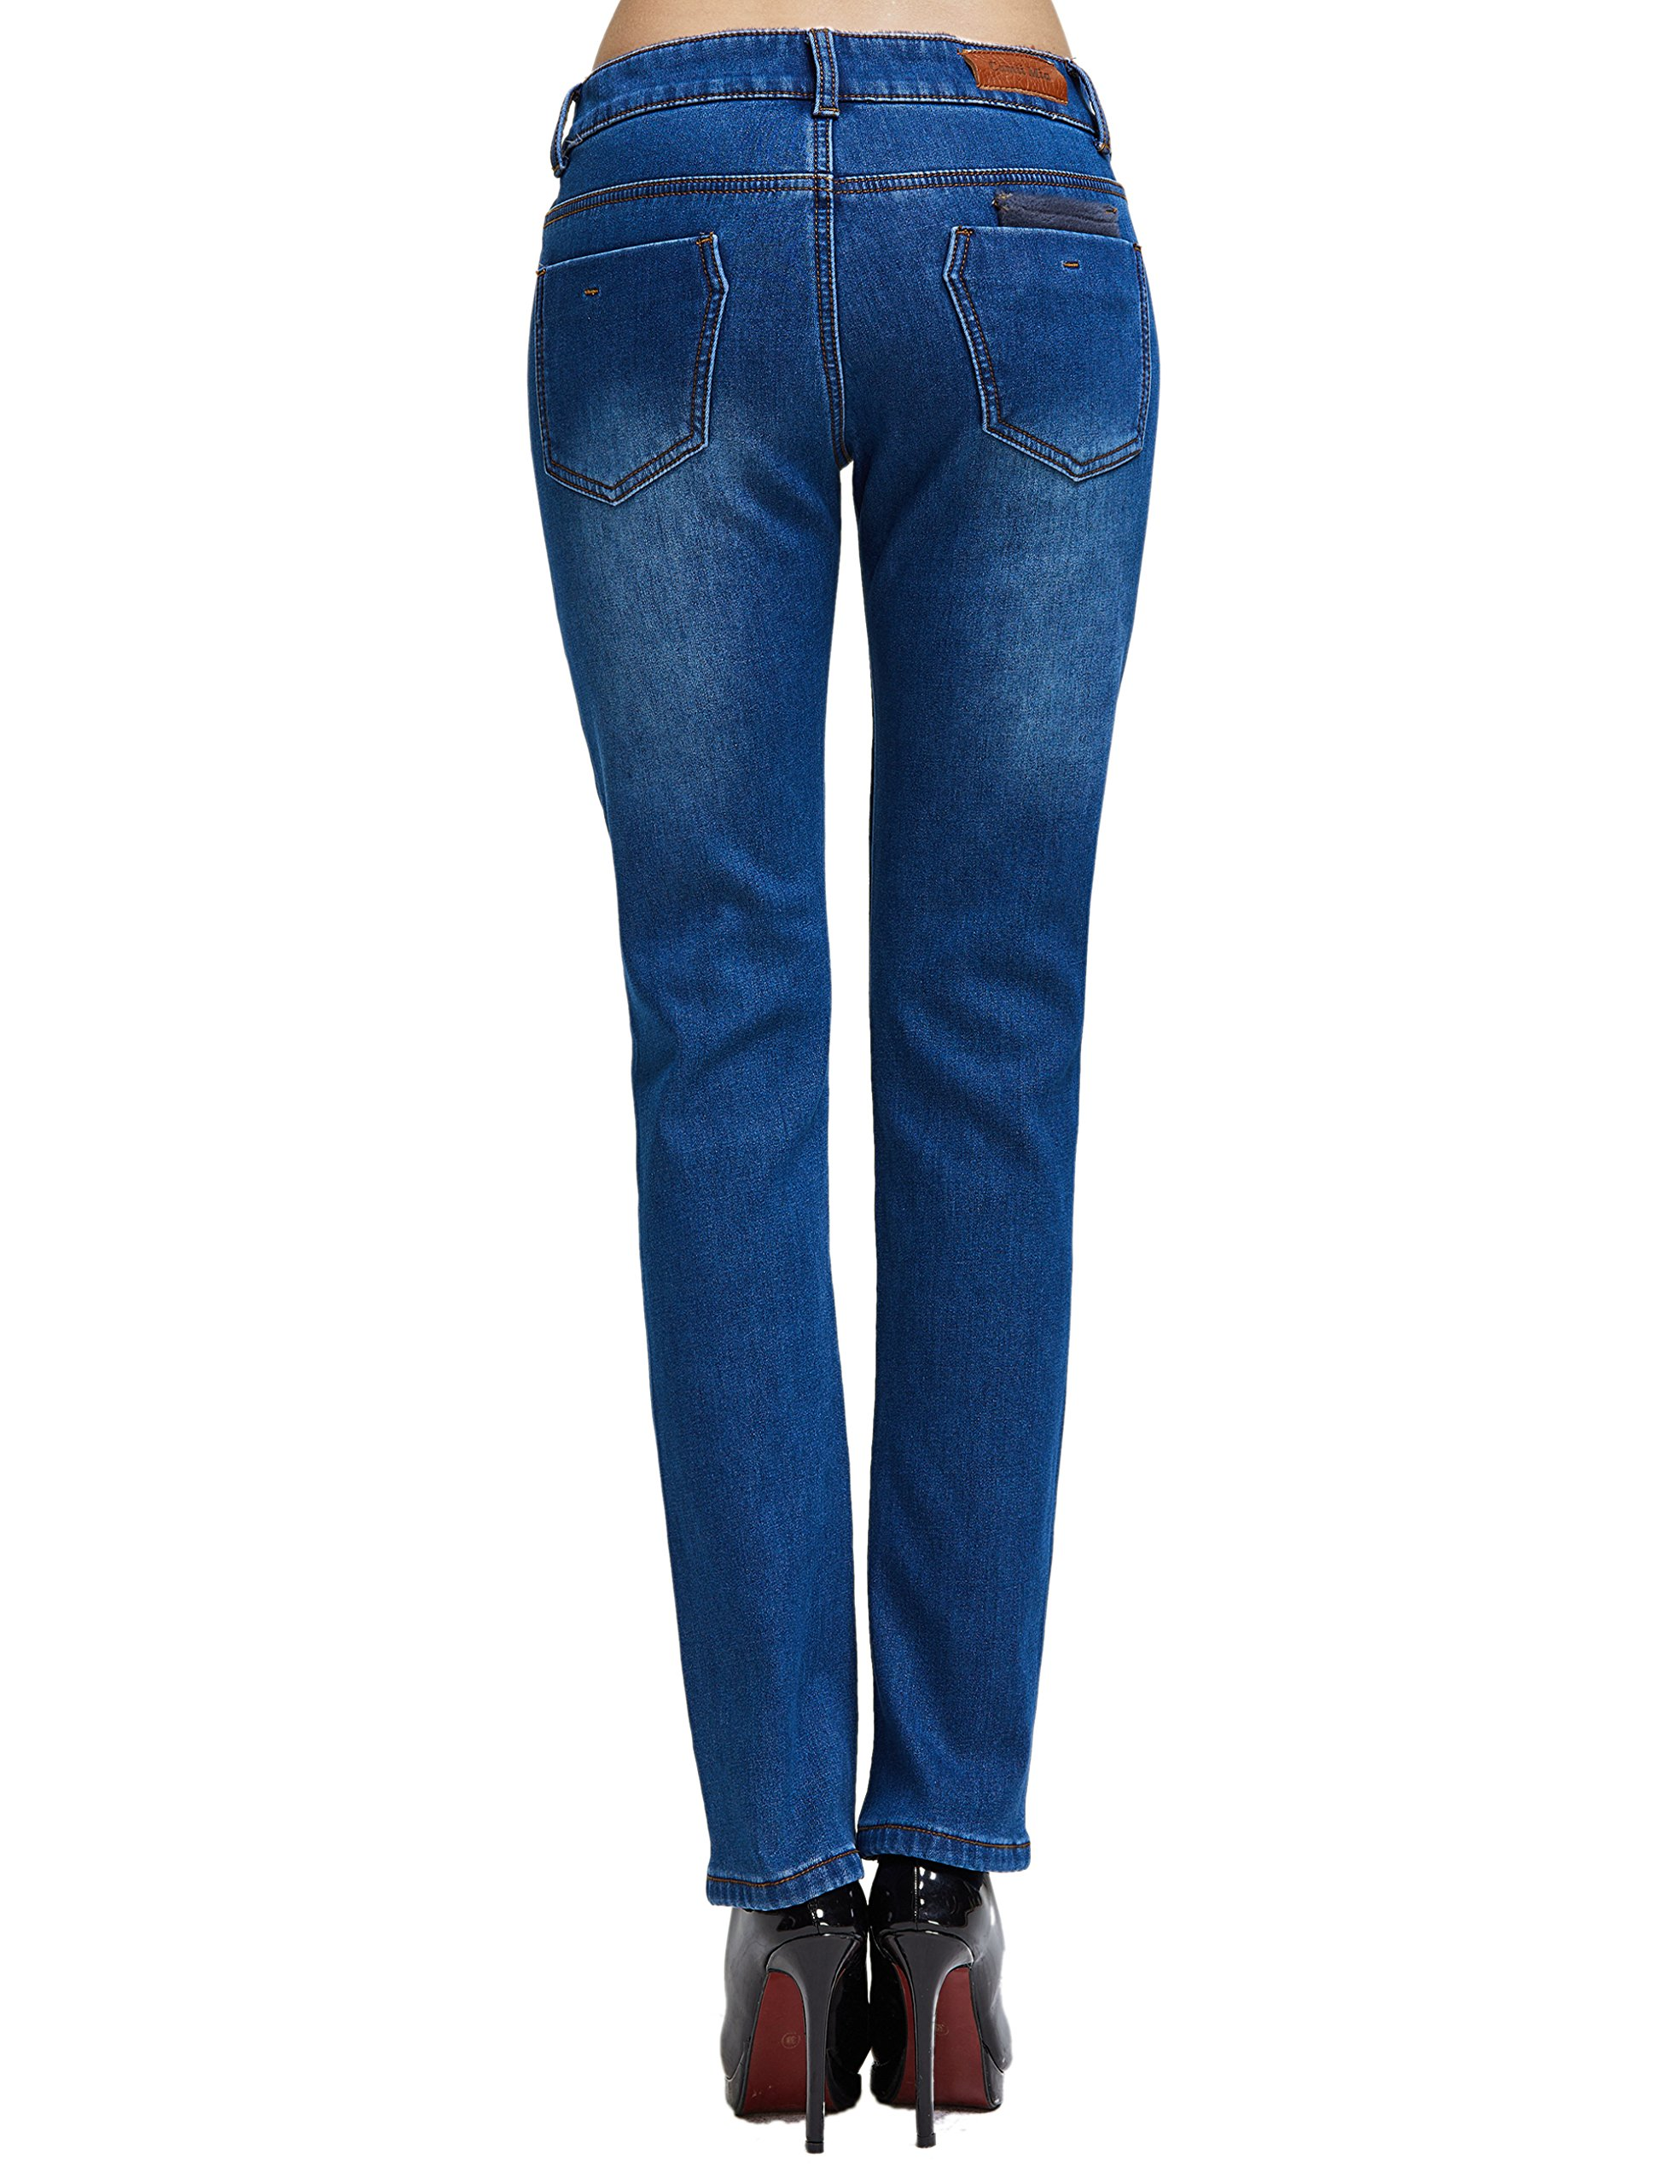 Camii Mia Women's Winter Slim Fit Thermal Jeans Pants (W28 x L30, Blue (New Size)) by Camii Mia (Image #2)